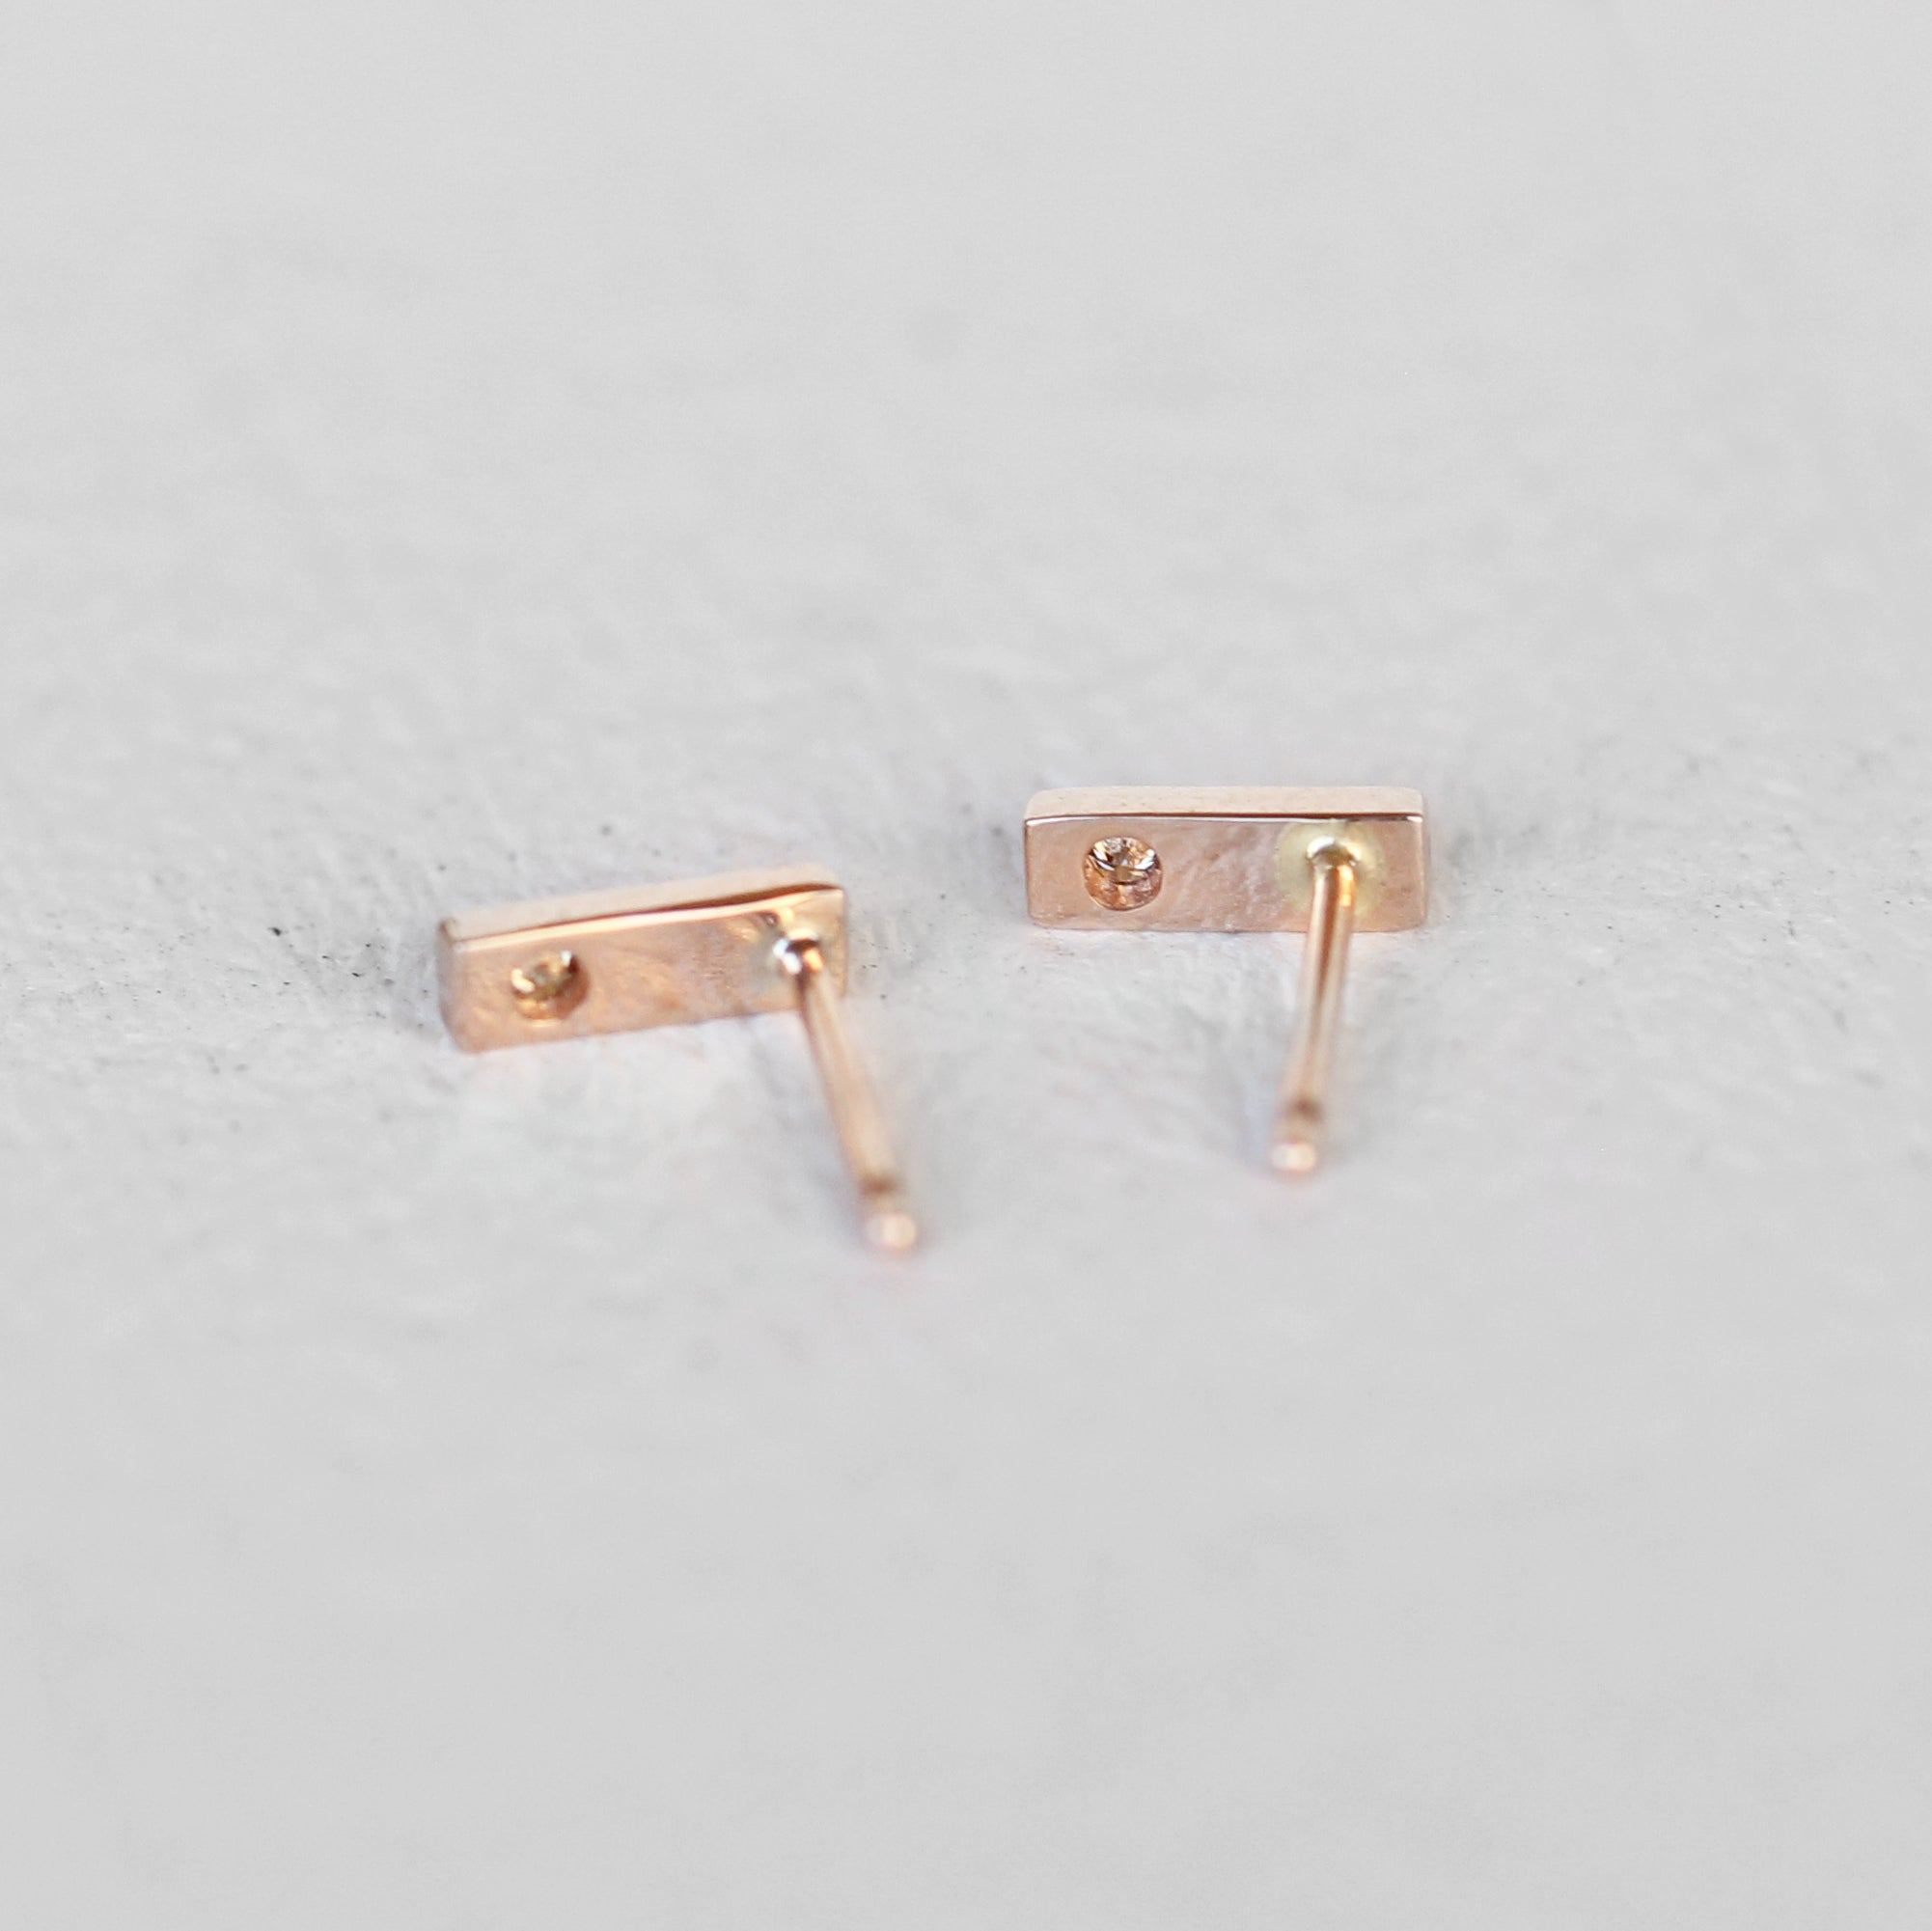 Chantell Earrings - Diamond and 14k Gold Bar Earrings- Ready to Ship - Celestial Diamonds ® by Midwinter Co.